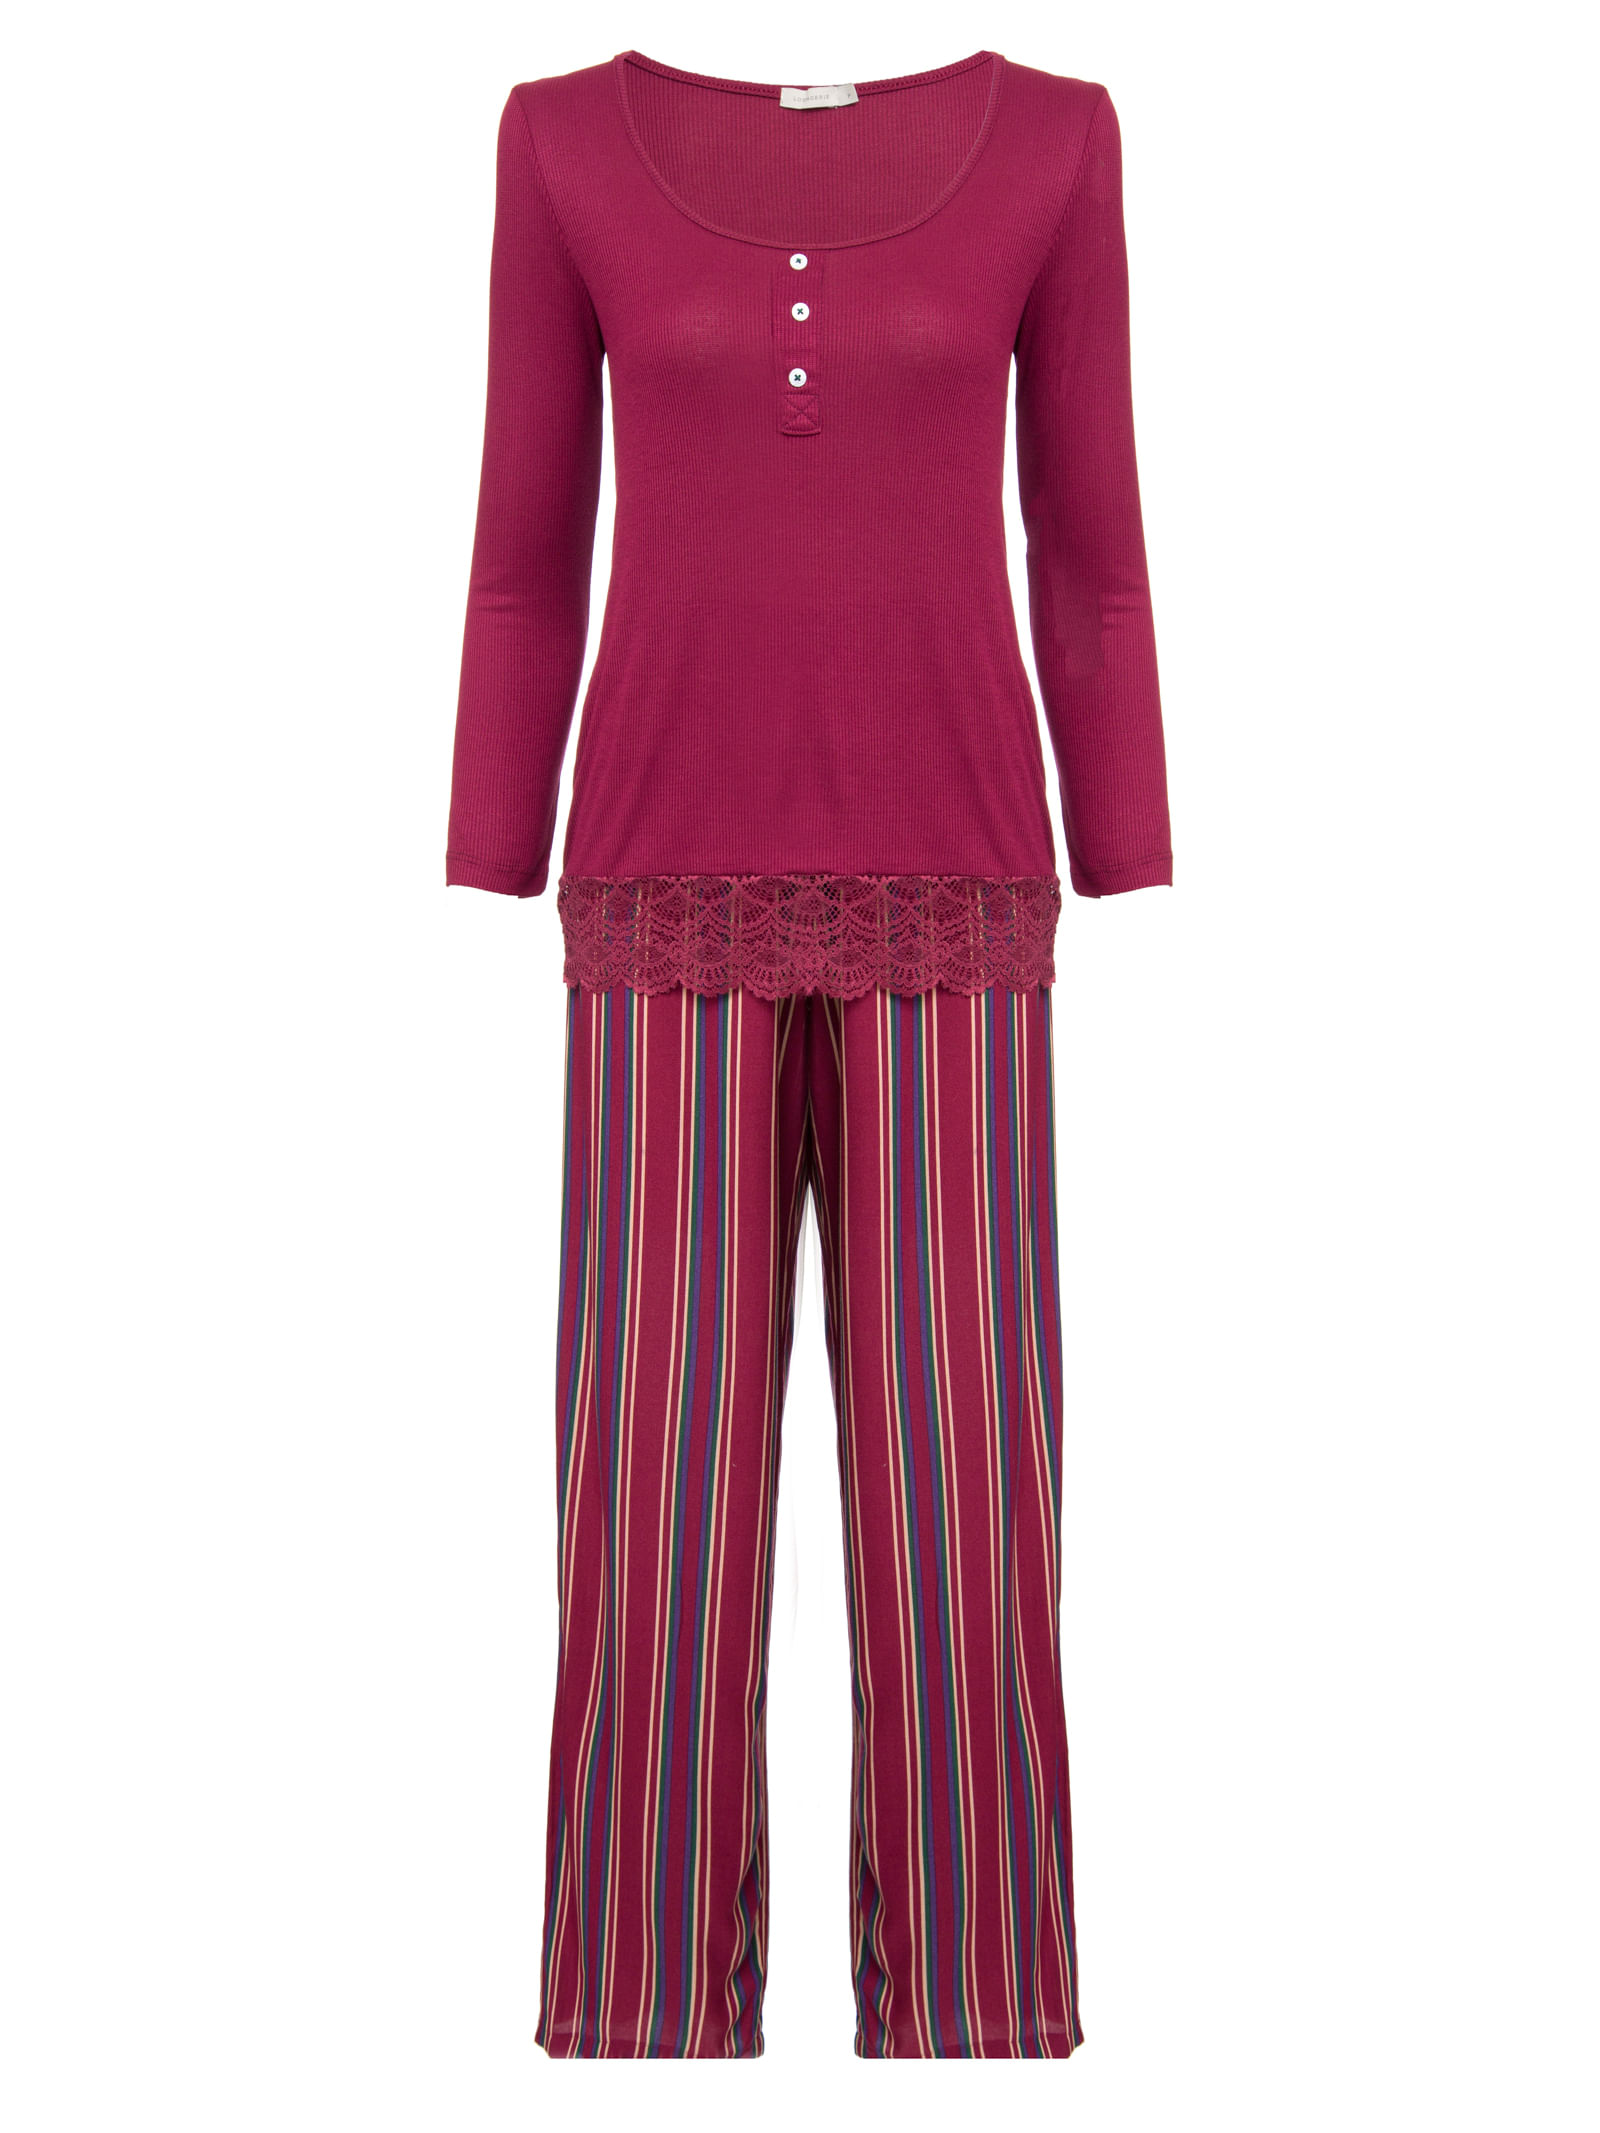 35230036_76_1-PIJAMA-LG-ML-MALHA-VISCOSE-STRIPES